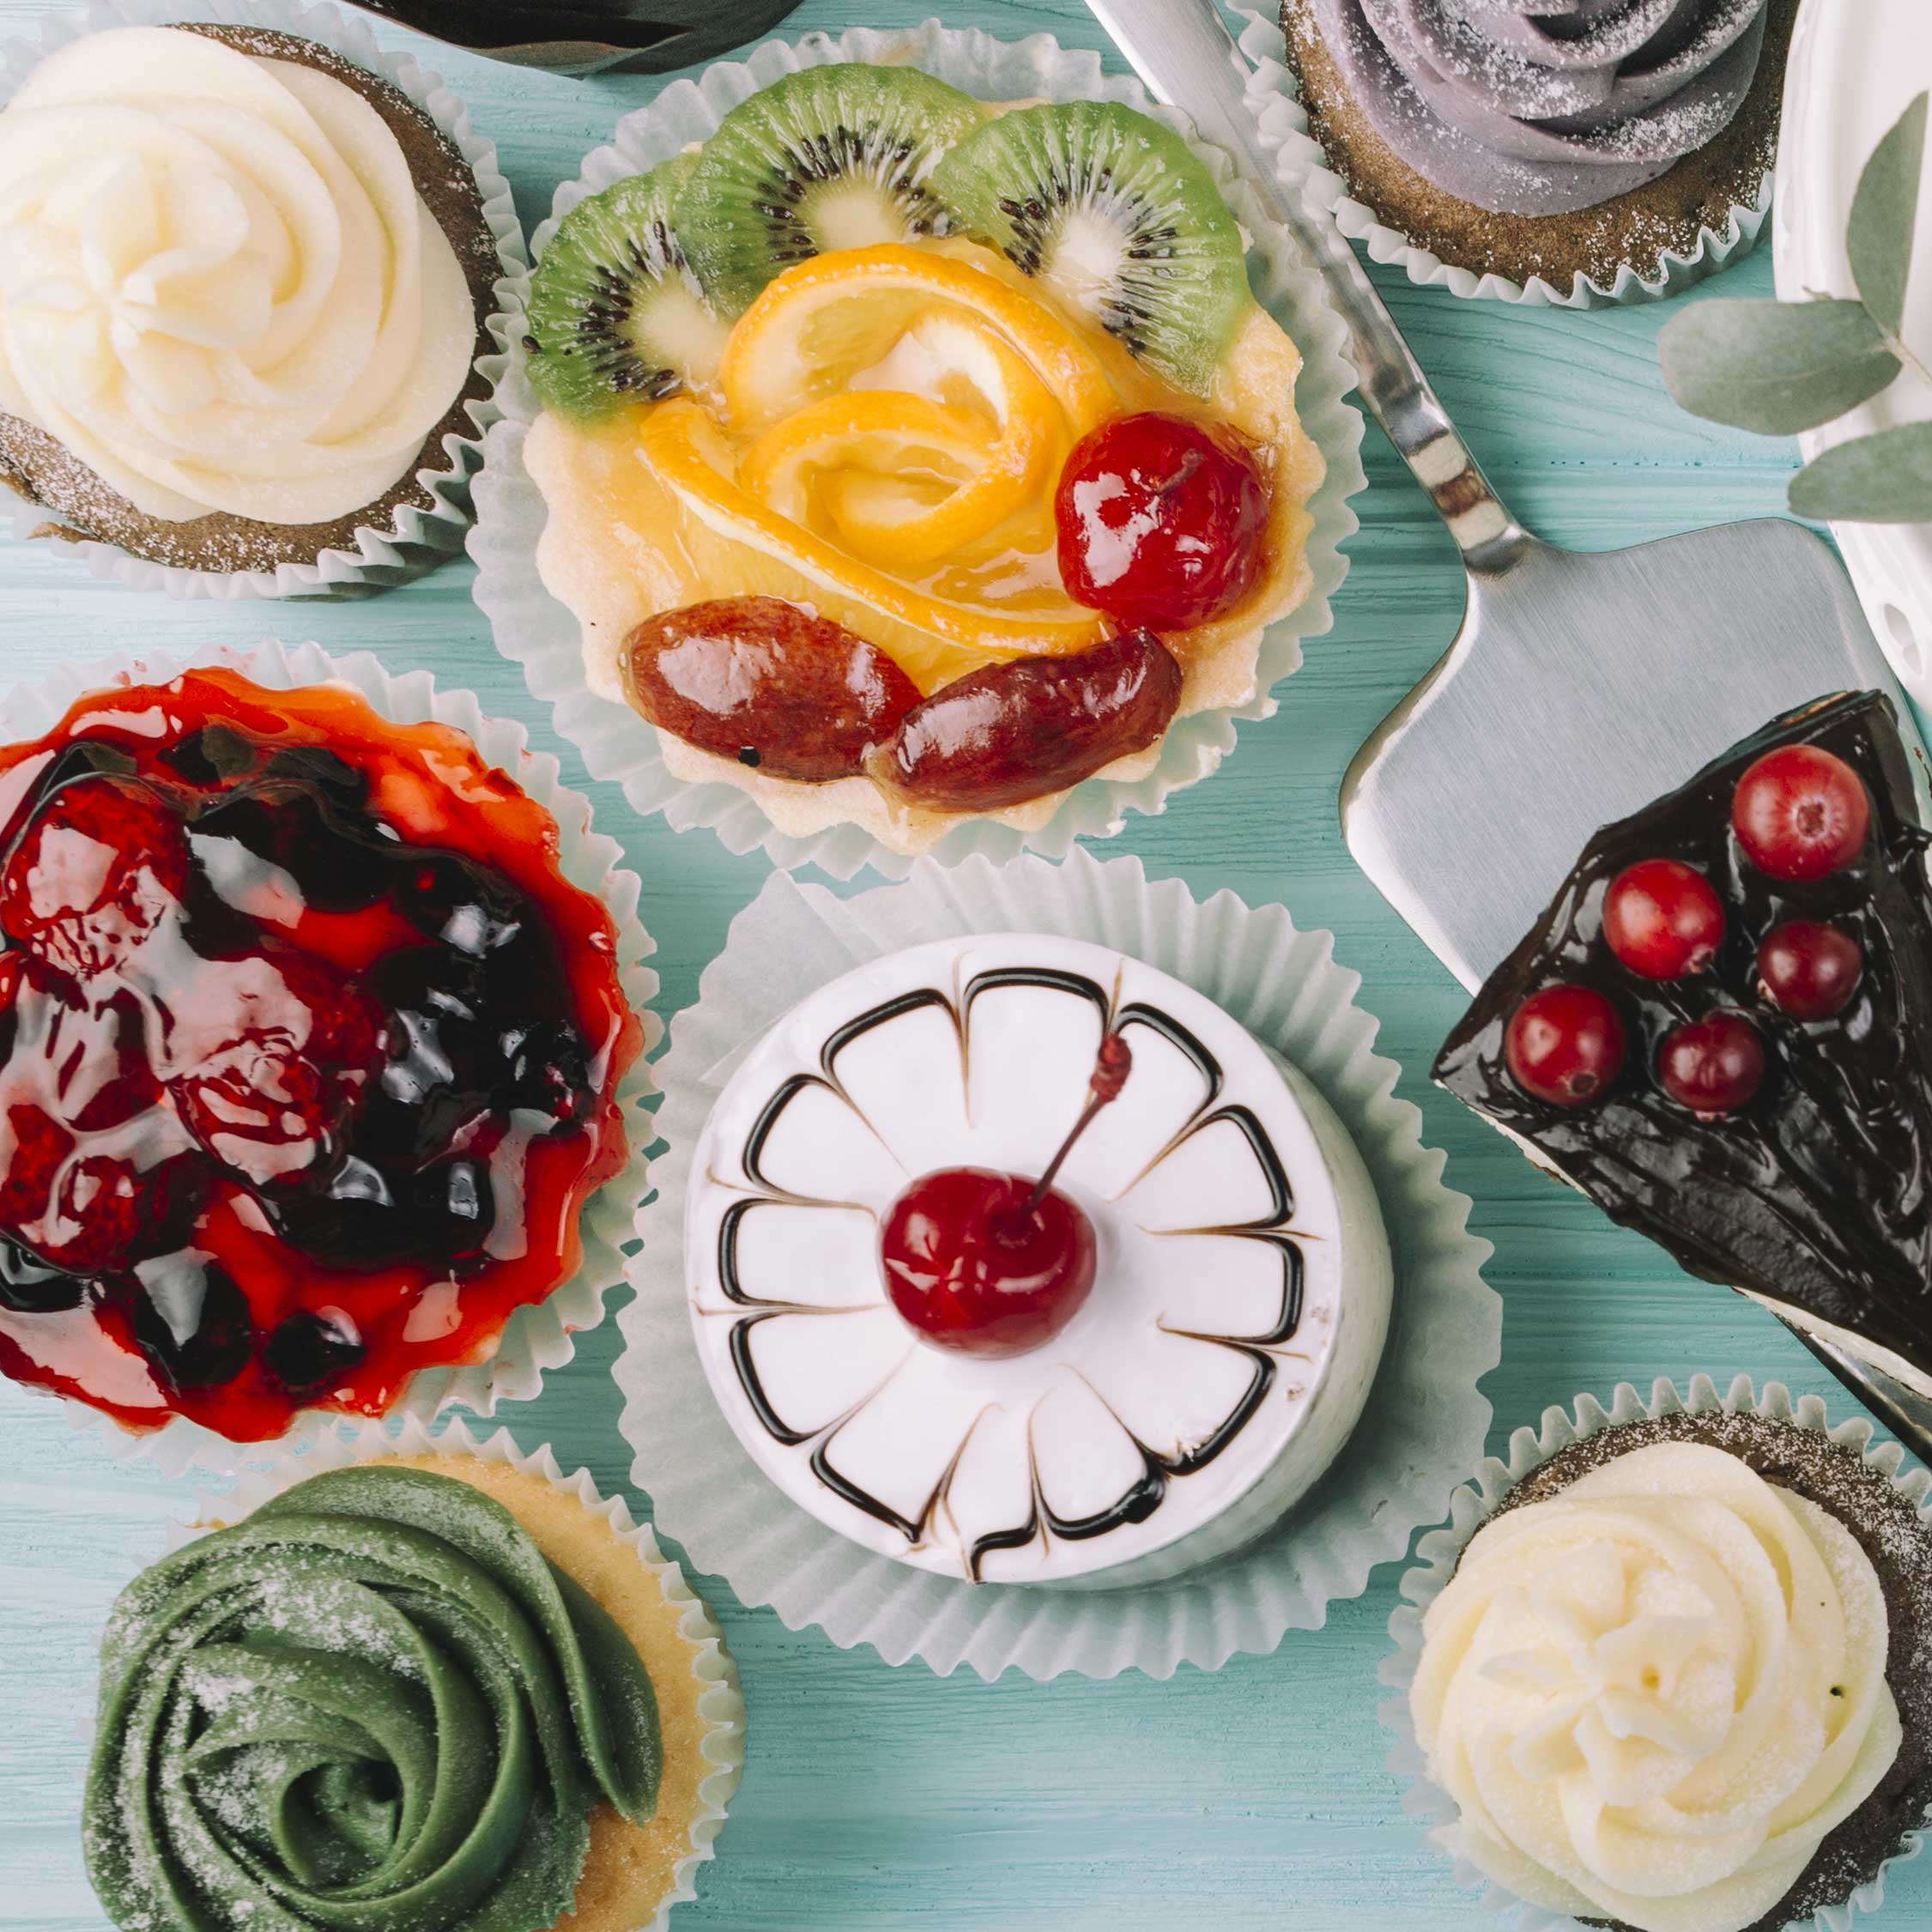 CAKES & DESSERTS - 6 products